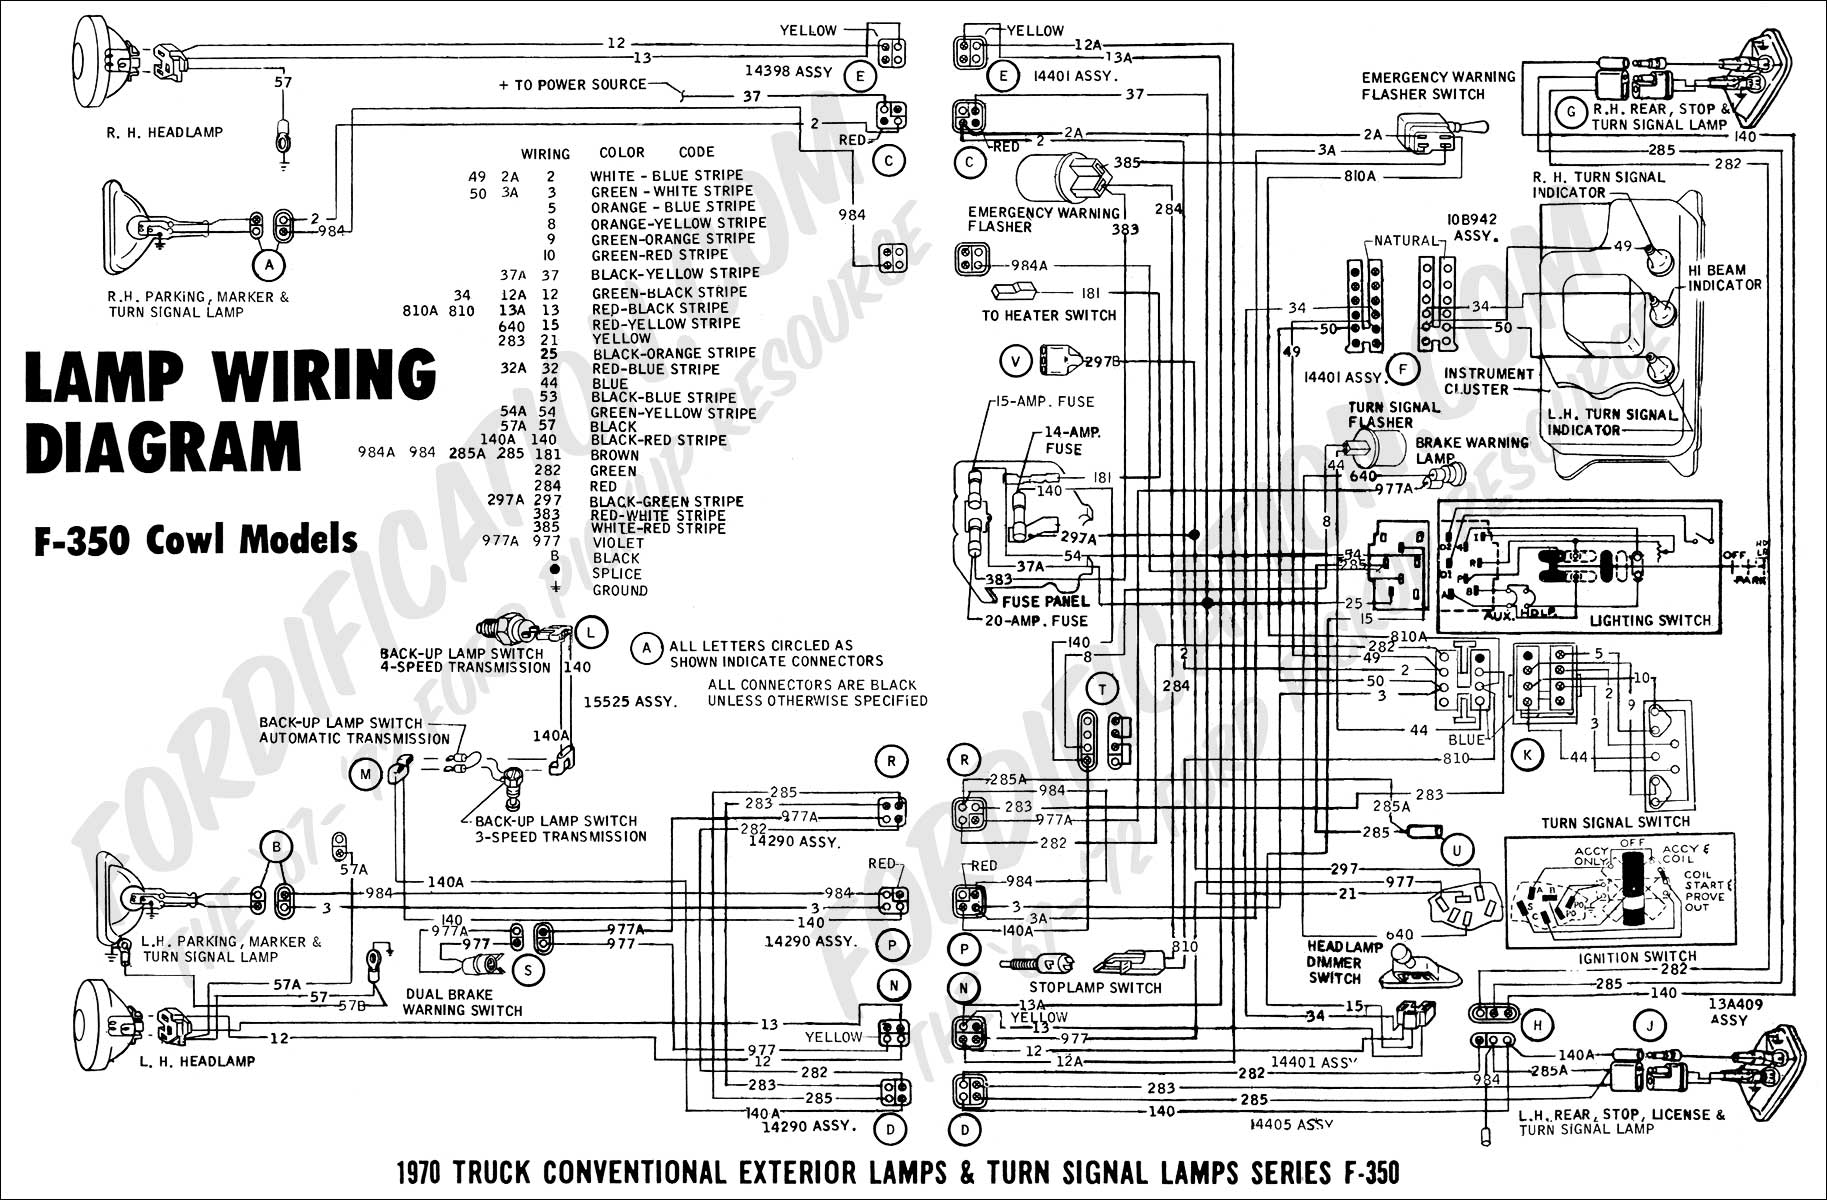 2002 Ford F450 Wiring Diagram Diagrams Chevy Avalanche Light Schematic Todays Chevrolet Suburban